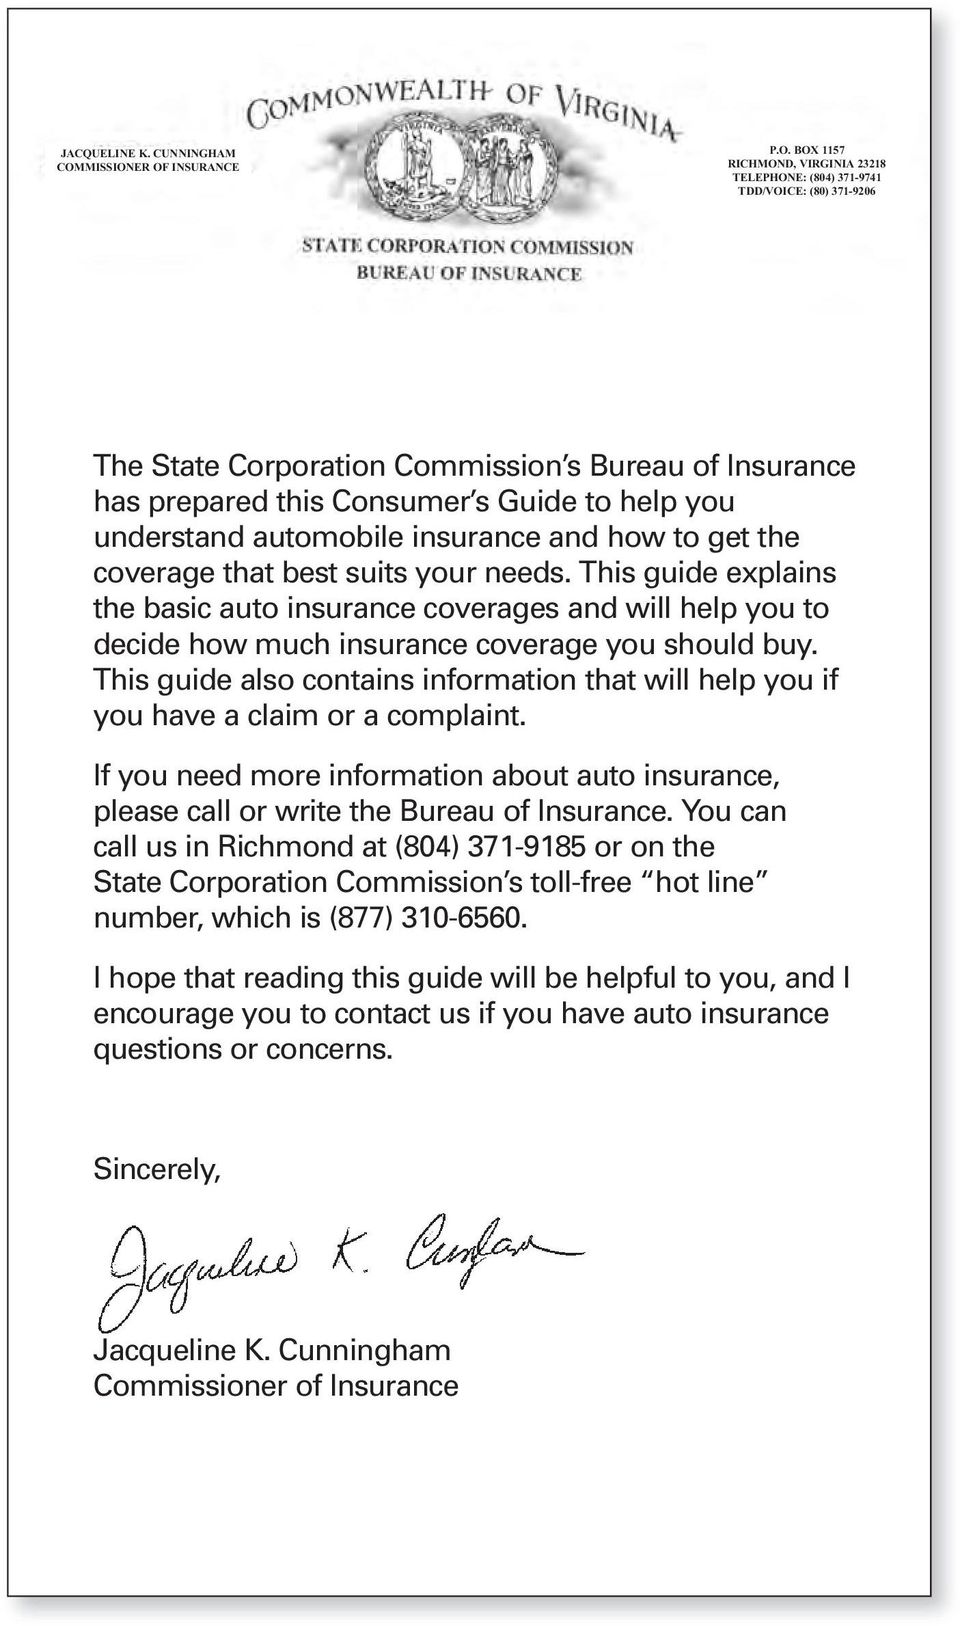 ER OF INSURANCE P.O. BOX 1157 RICHMOND, VIRGINIA 23218 TELEPHONE: (804) 371-9741 TDD/VOICE: (80) 371-9206 The State Corporation Commission s Bureau of Insurance has prepared this Consumer s Guide to